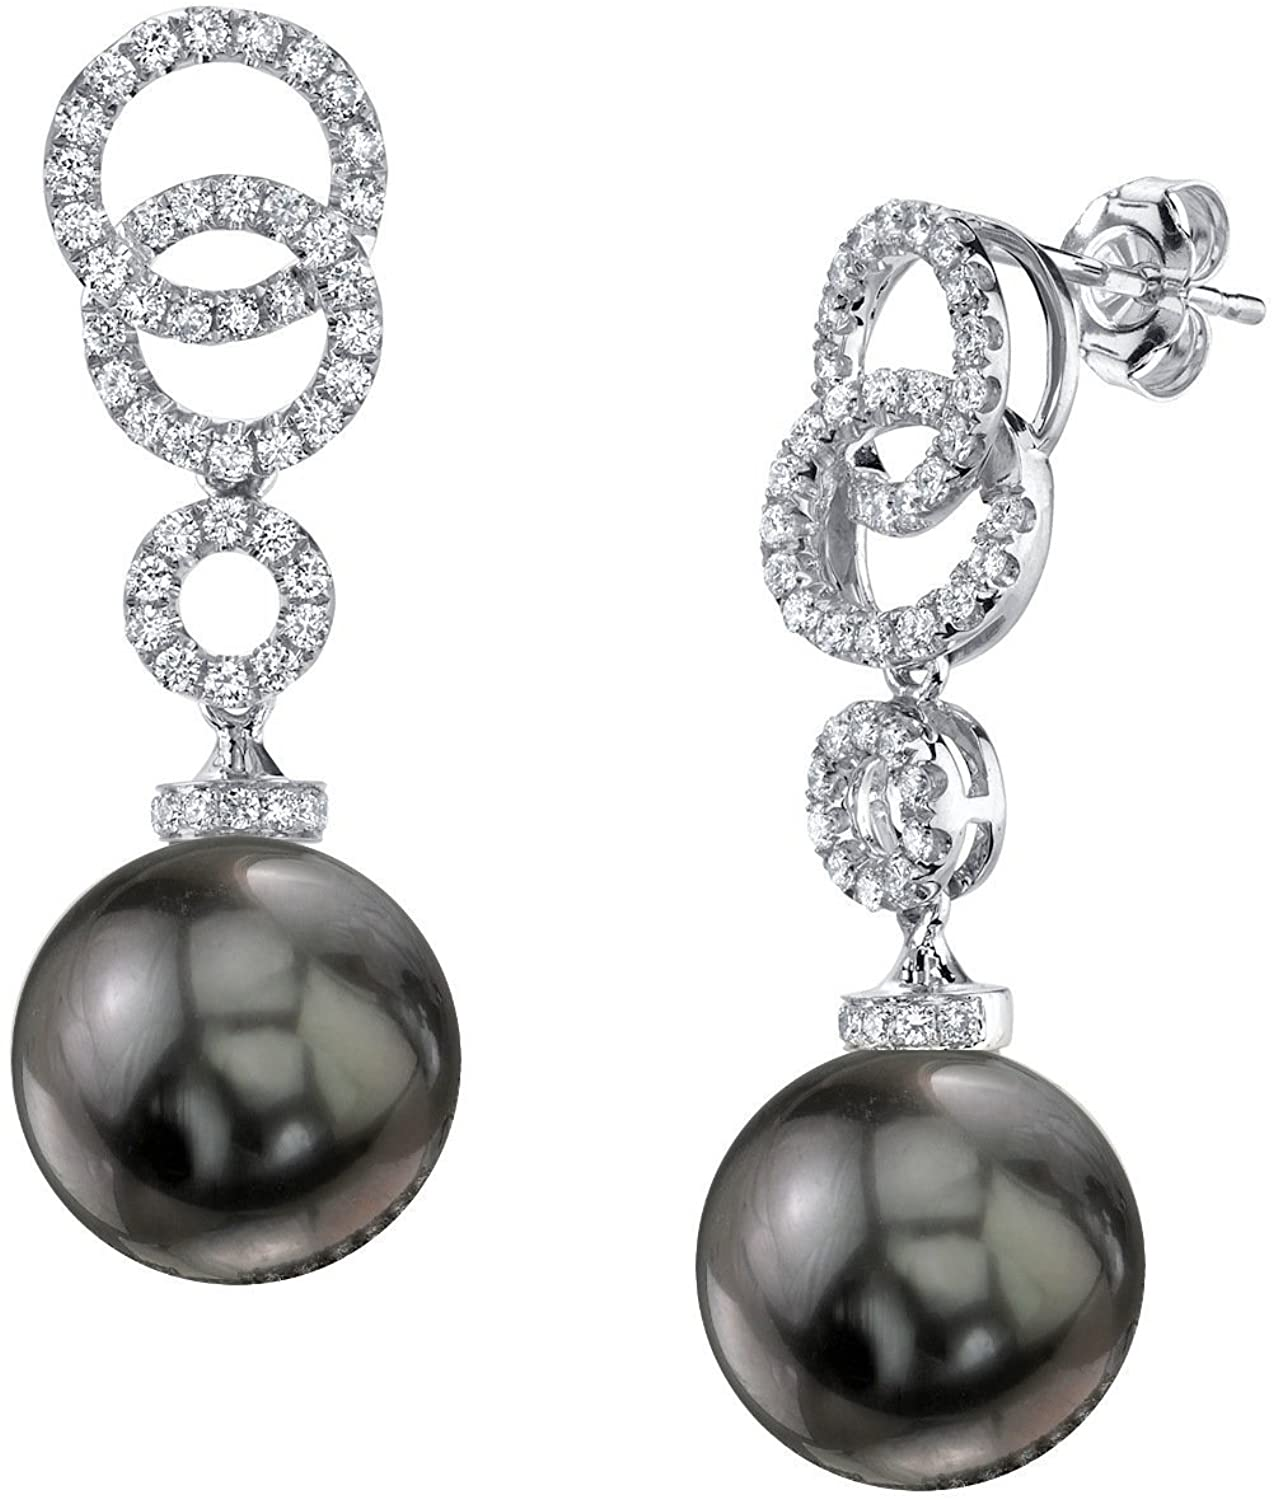 THE PEARL SOURCE 18K Gold Round Genuine Black Tahitian South Sea Cultured Pearl Diamond Link Earrings for Women